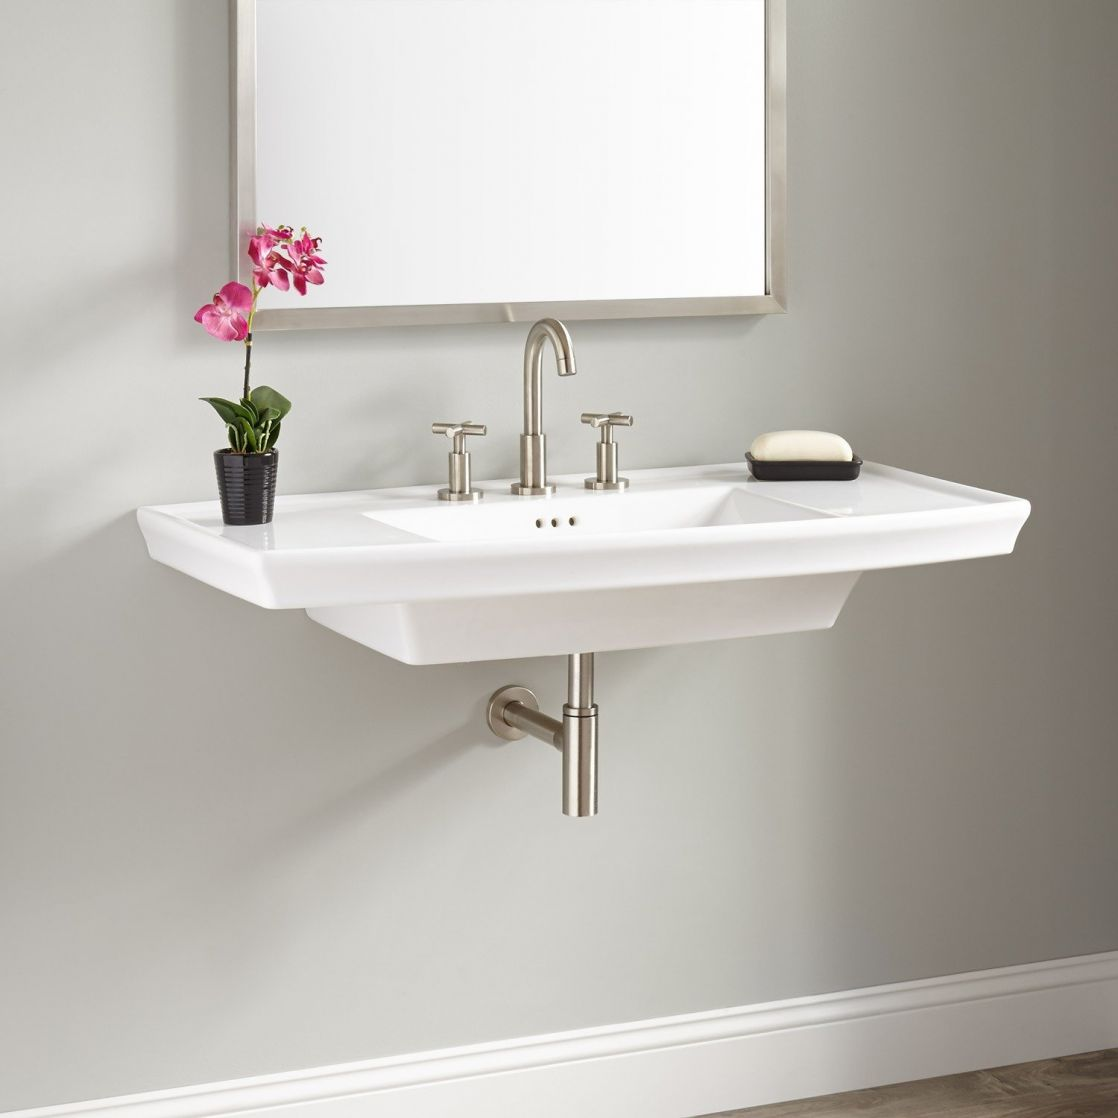 Charming Wall Mounted Bathroom Sinks Of Surprising Toilet As Lovely Hung Sink